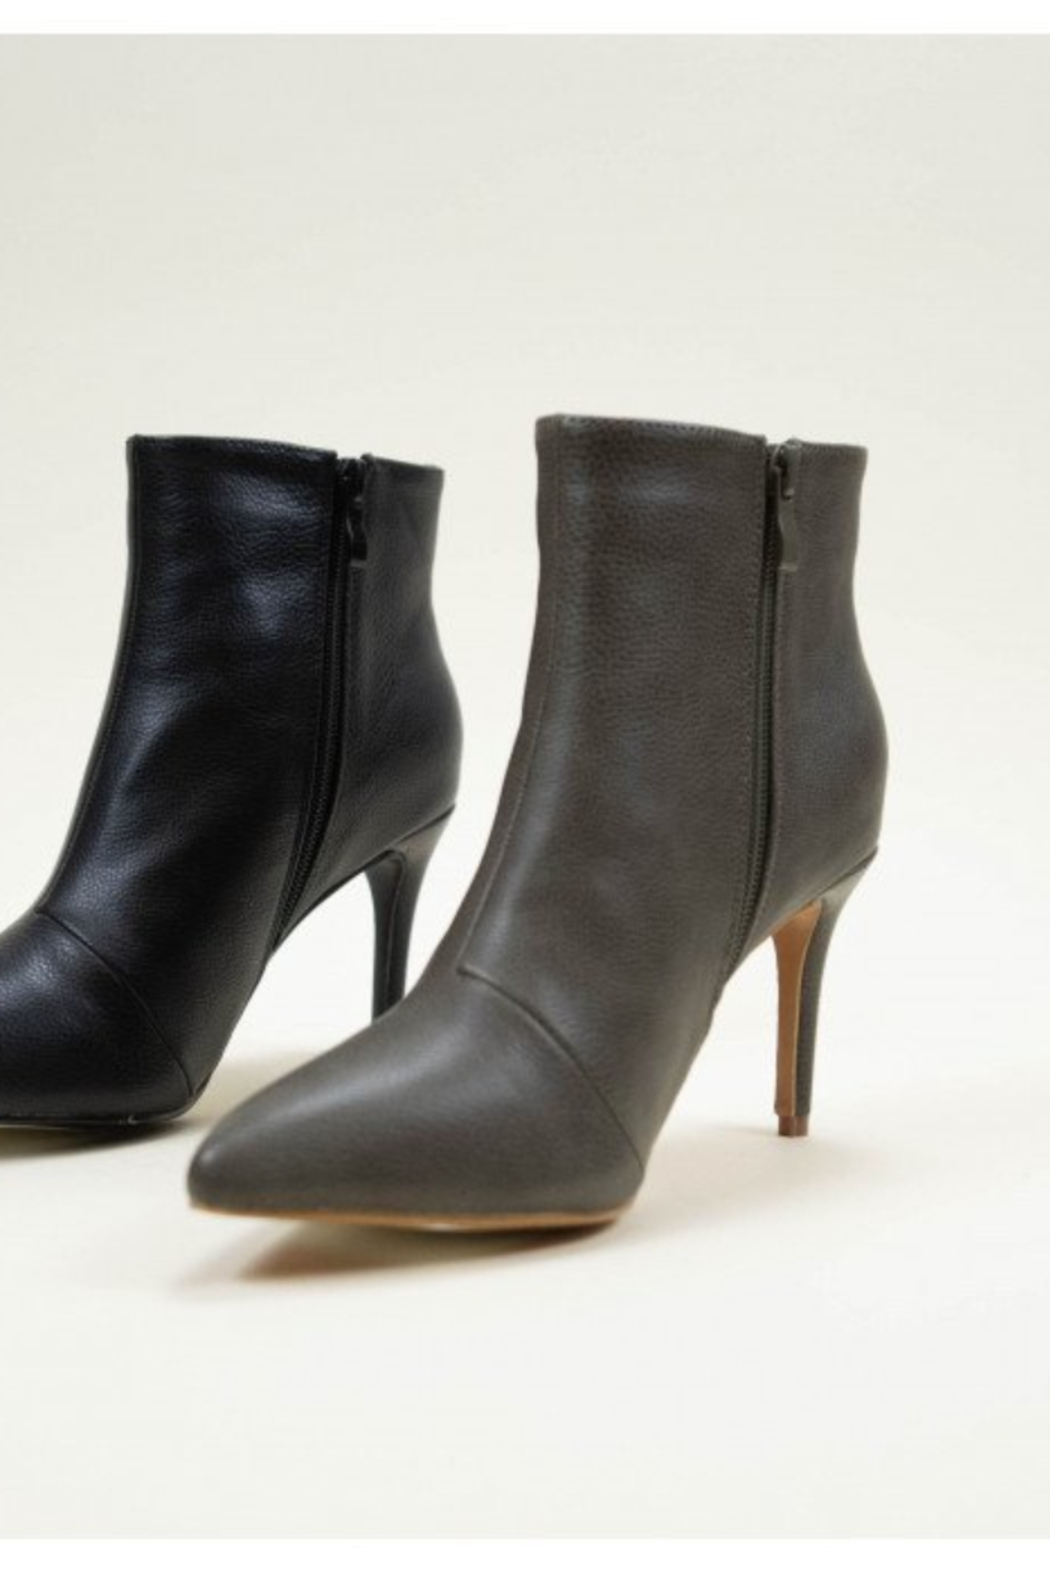 Ccocci - Collett - Black Bootie with Heel - Side Cropped Image